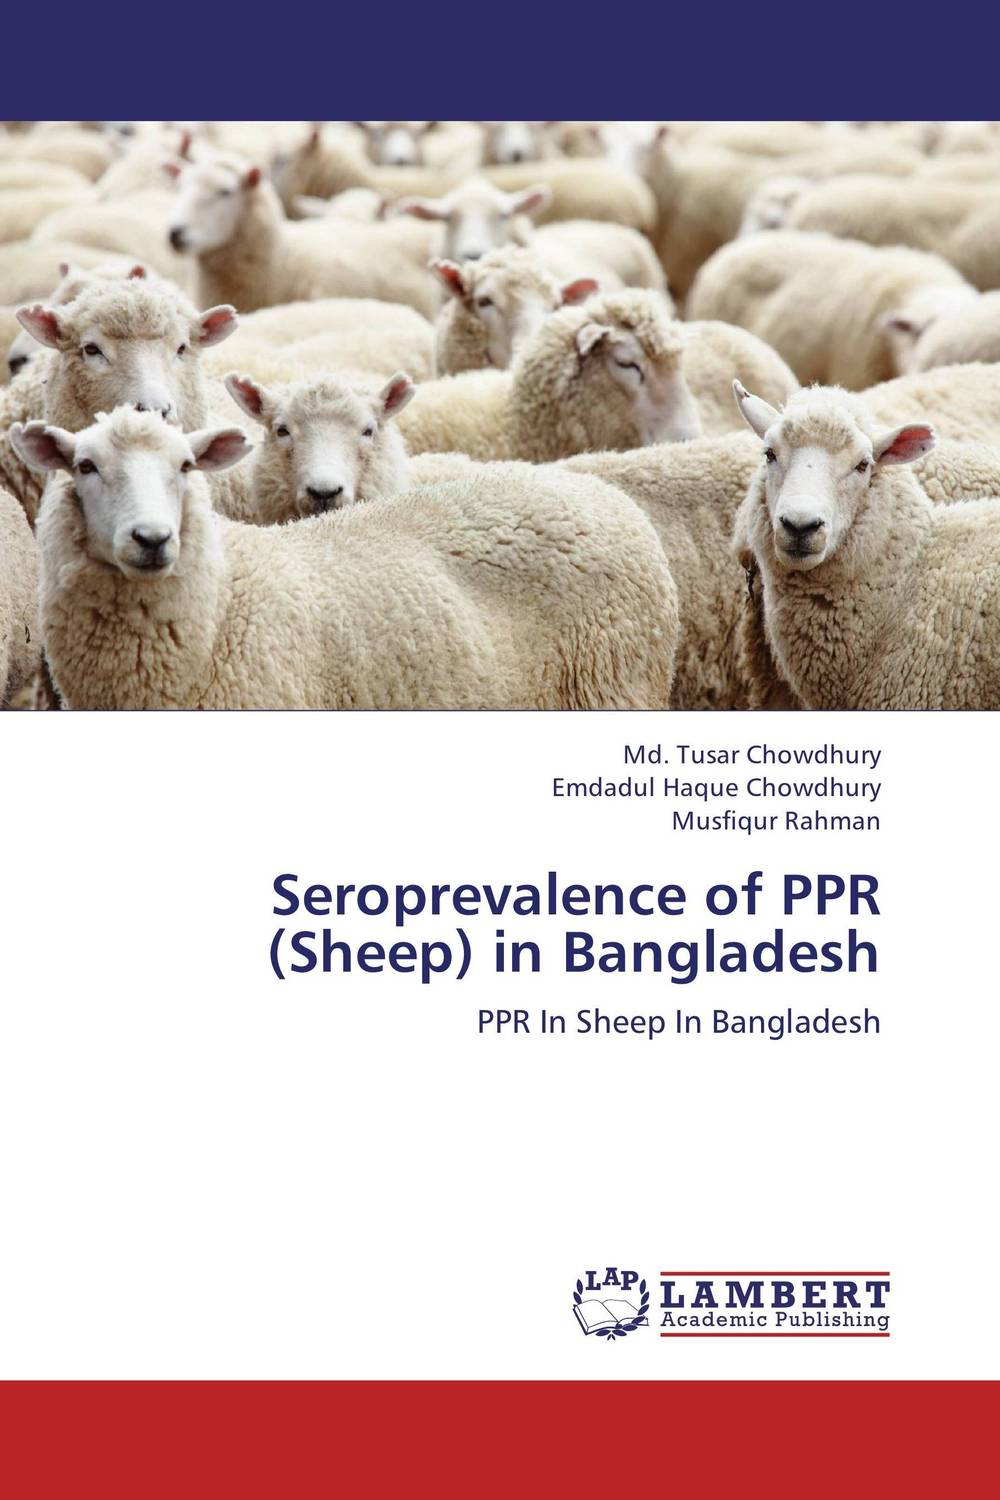 Seroprevalence of PPR (Sheep) in Bangladesh abraham gopilo epidemiology of peste des petits ruminants in ethiopia